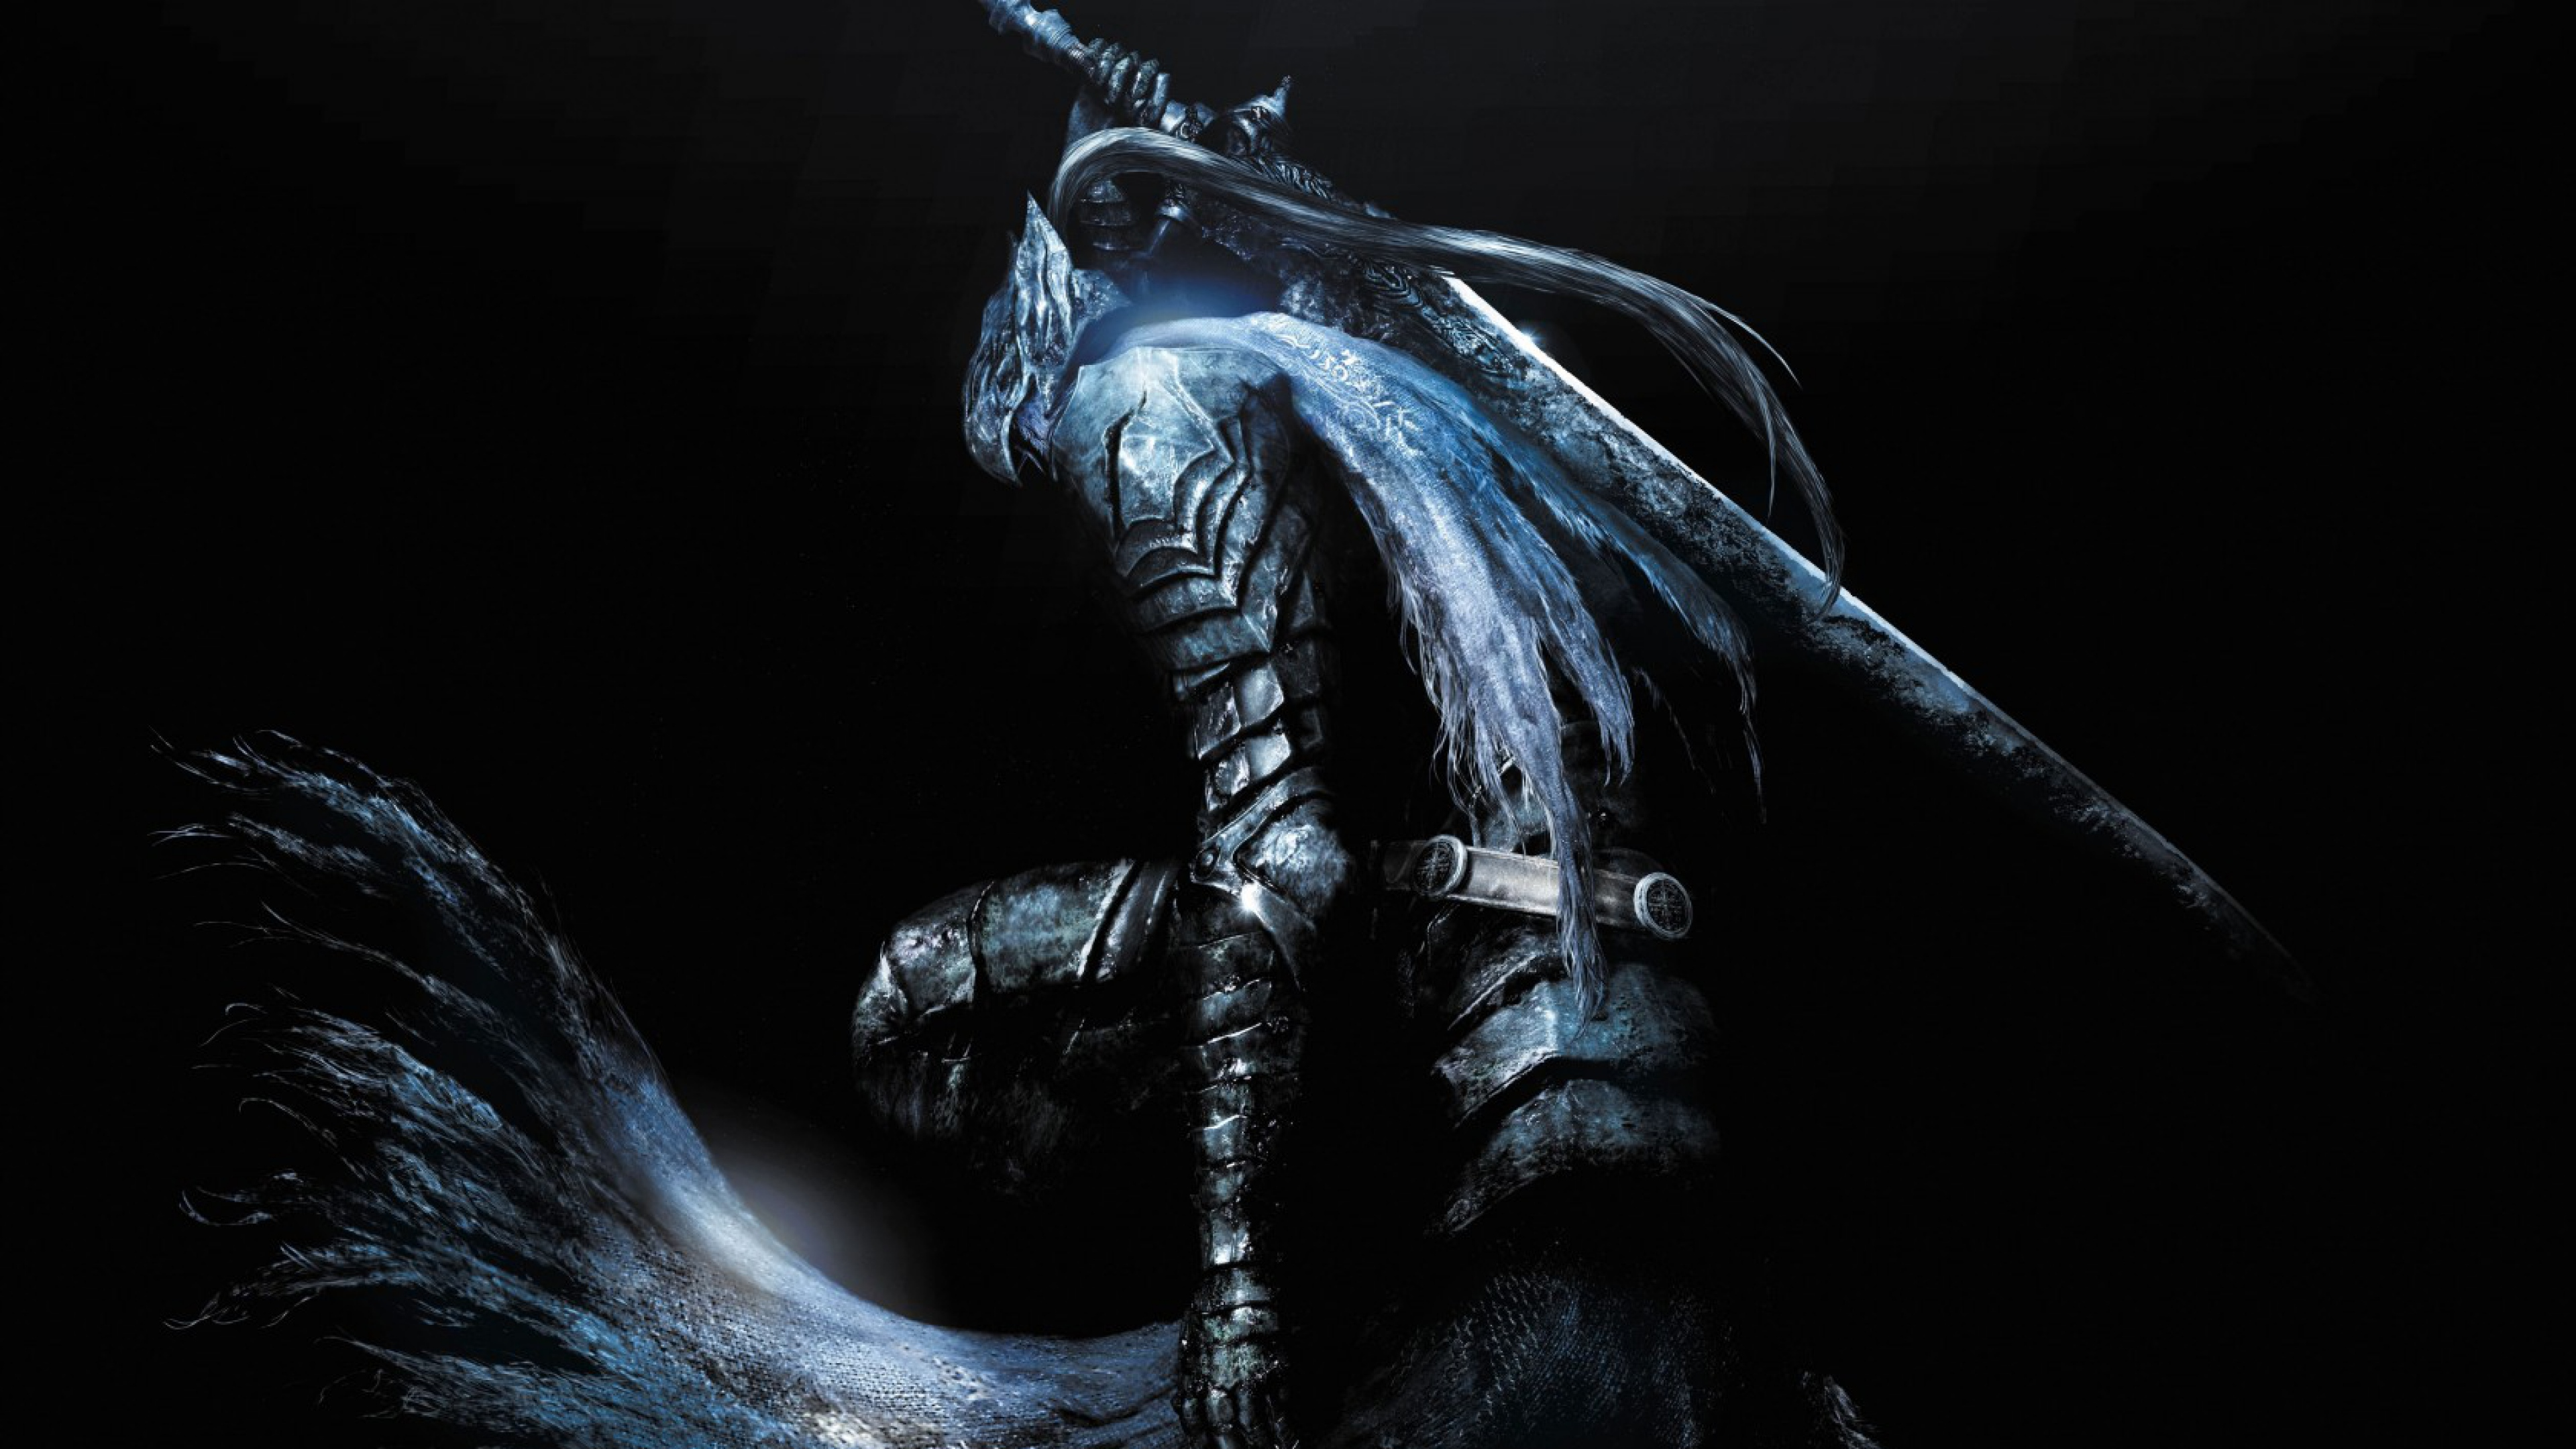 Dark Souls 3 Pc Game Hd Games 4k Wallpapers Images Backgrounds